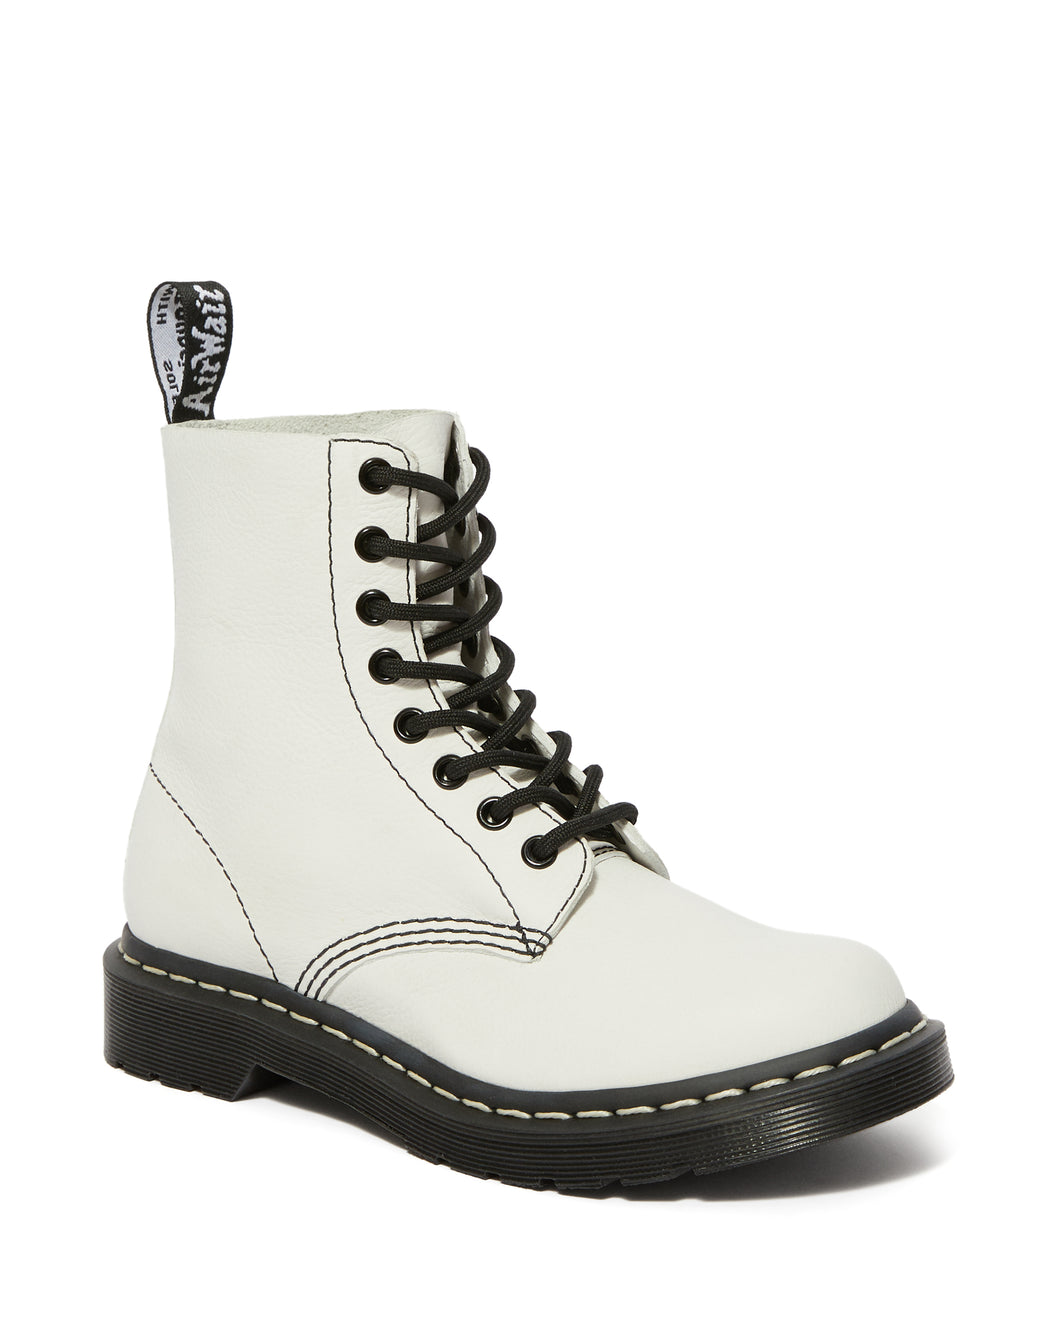 1460 Pascal Virginia B&W UP Boots (optical white)